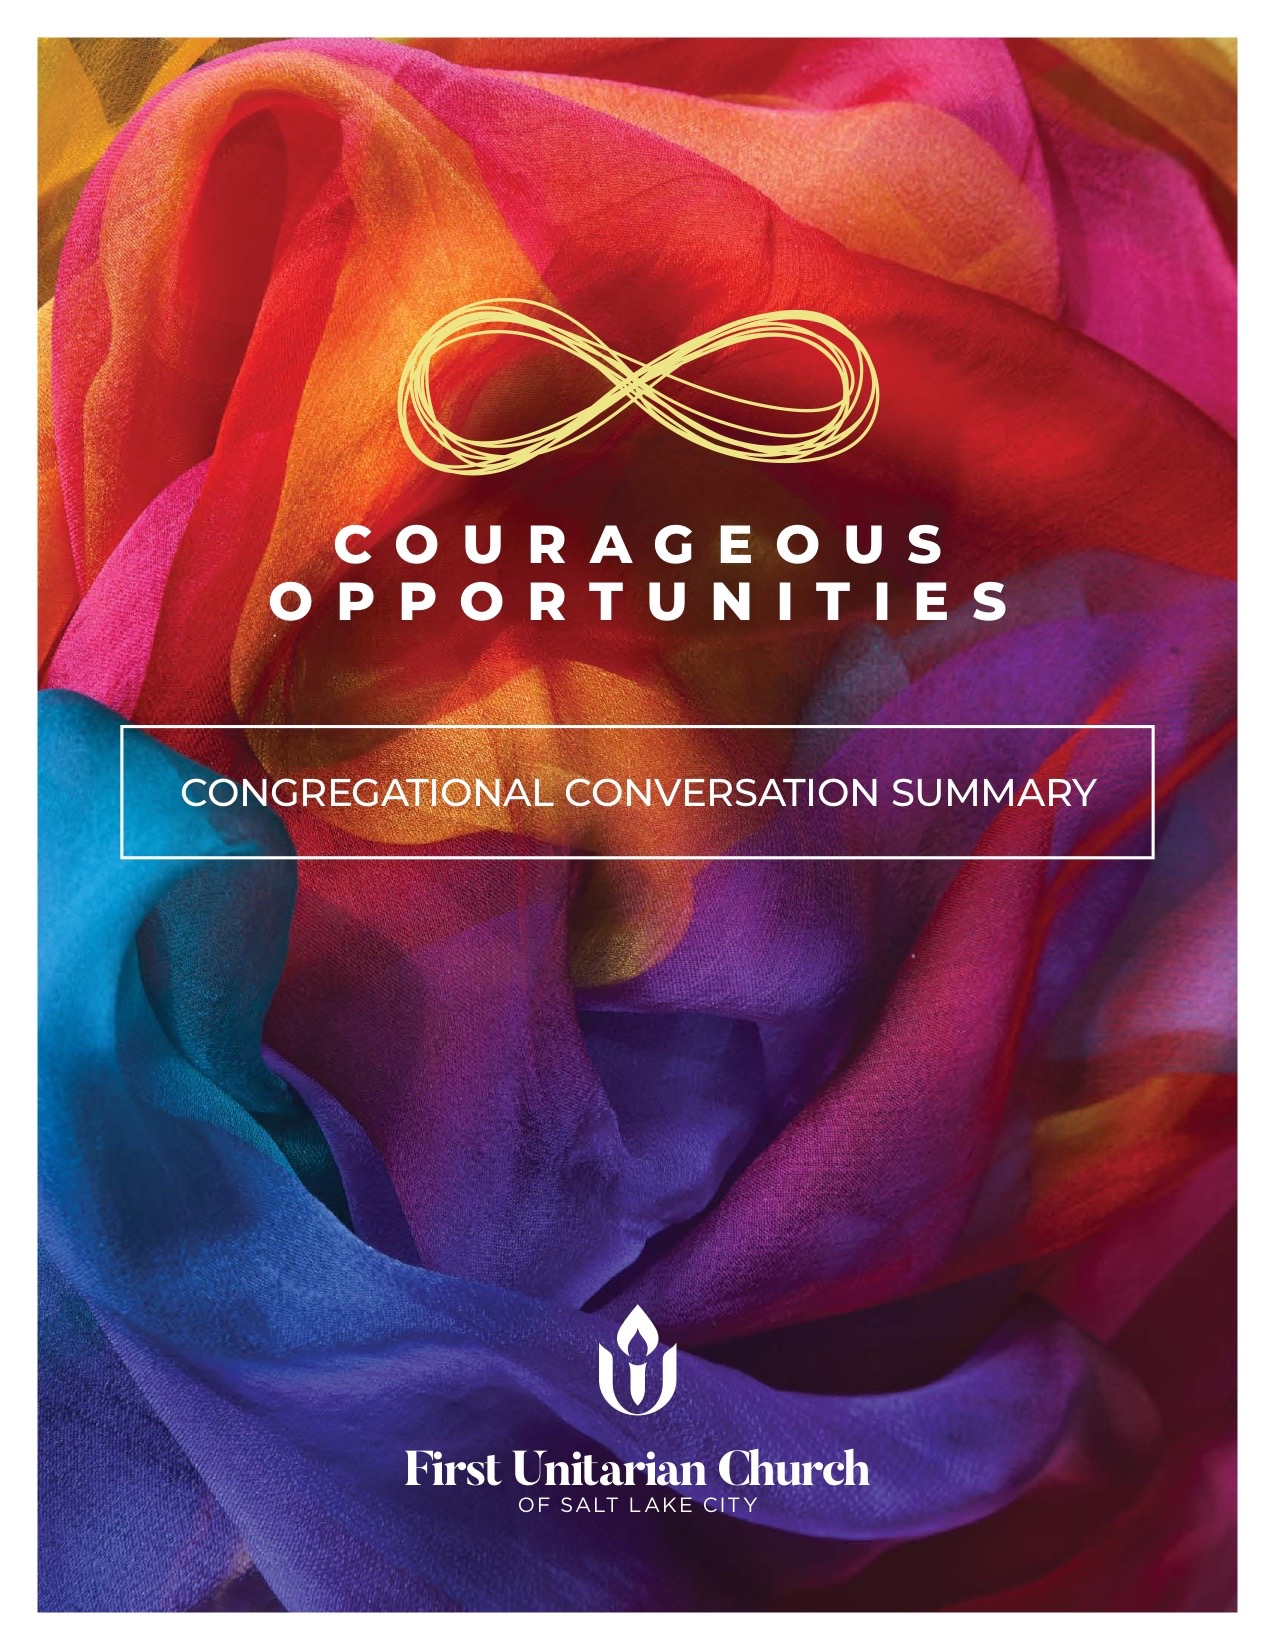 Courageous Opportunities Summary